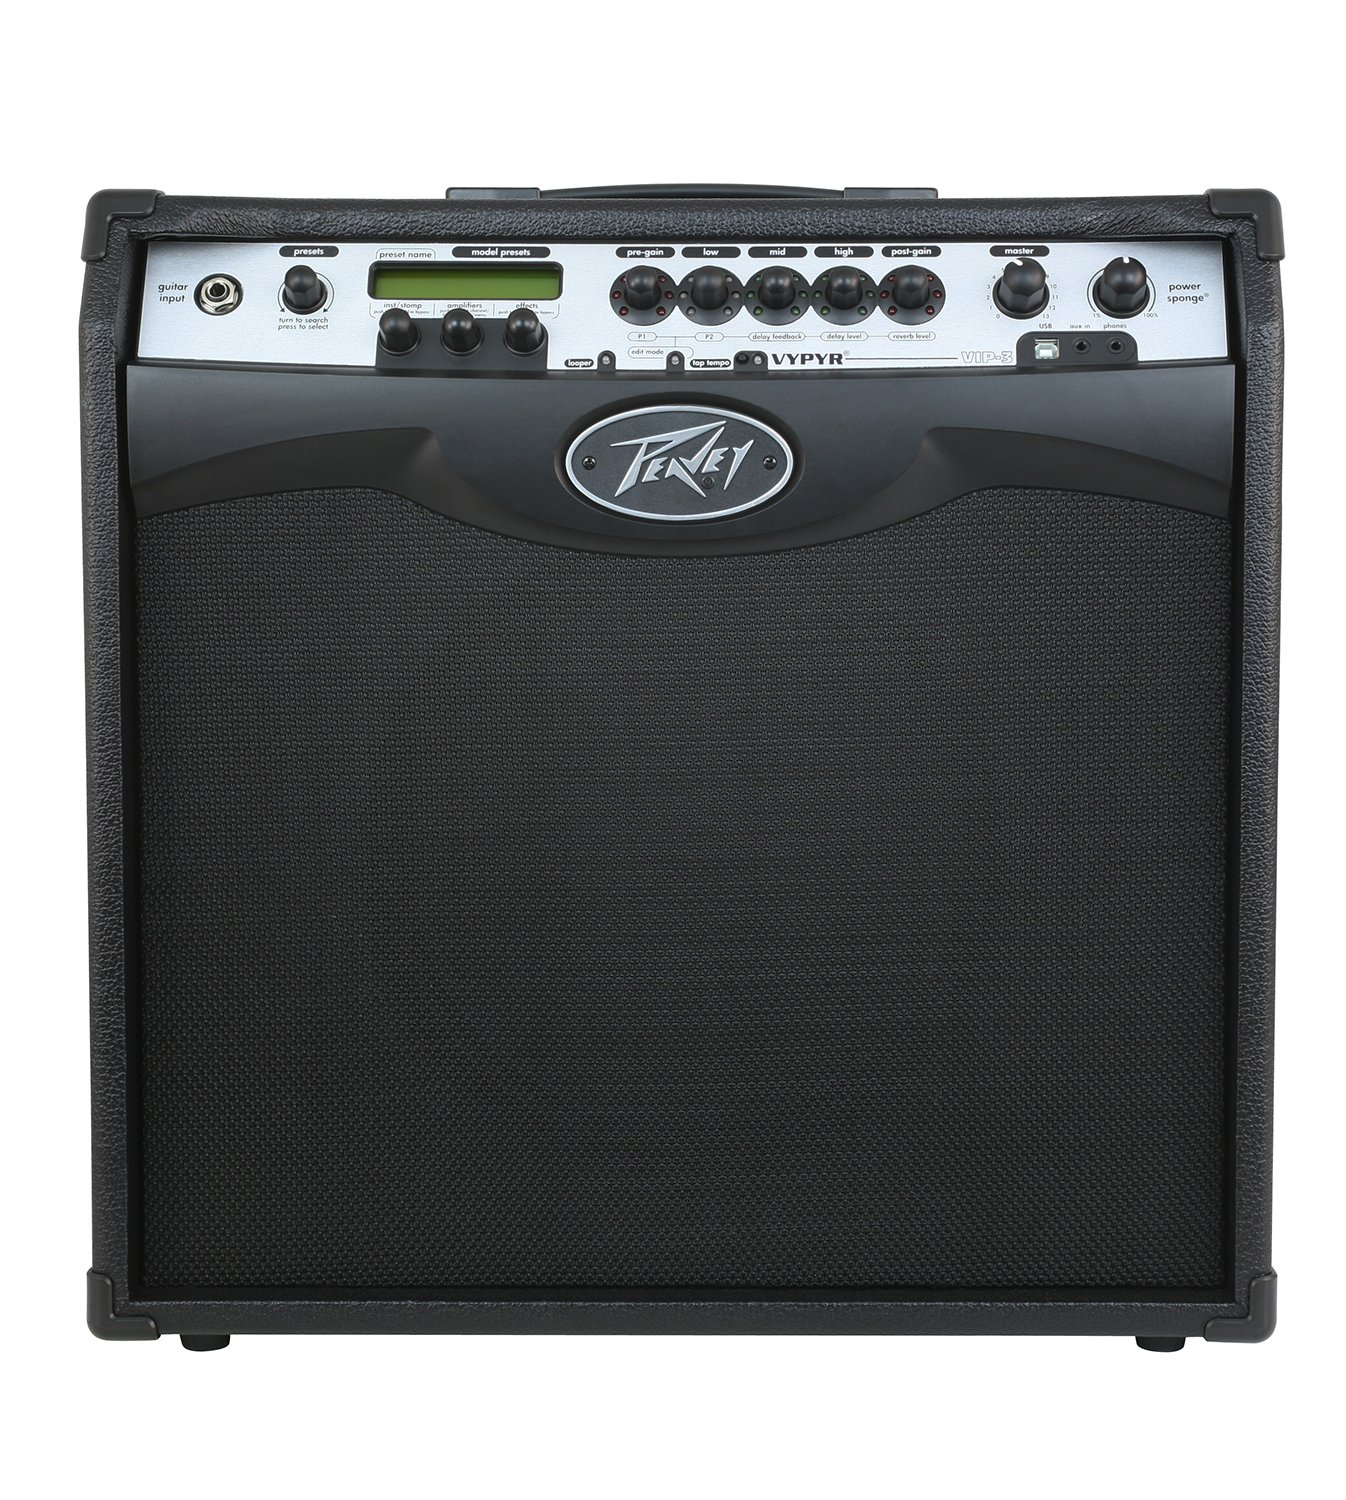 PEAVEY VYPYR VIP 3 MODELING GUITAR COMBO AMPLIFIER 1x12 100W (03608160)